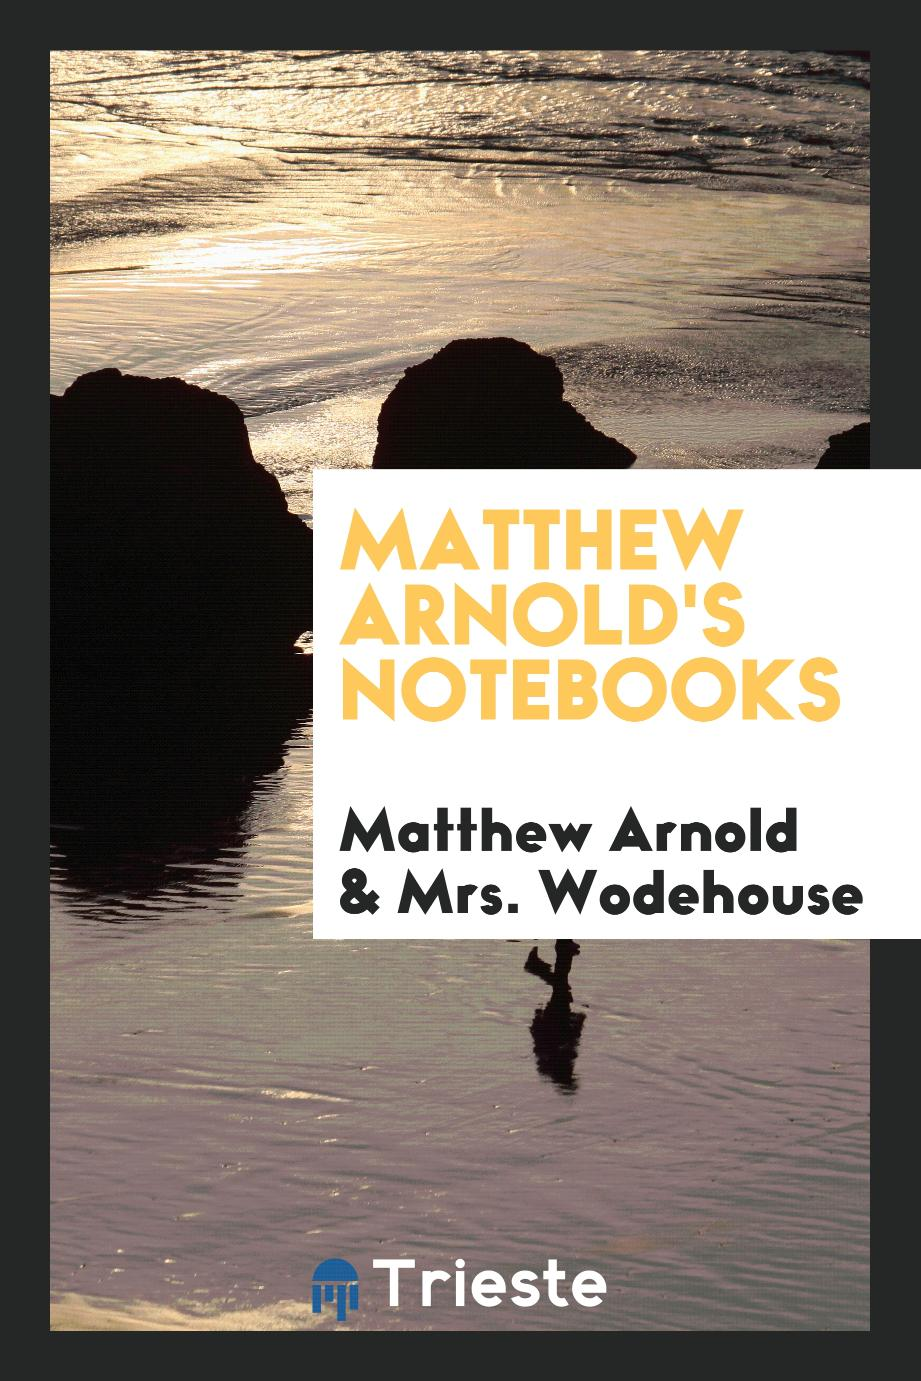 Matthew Arnold's Notebooks